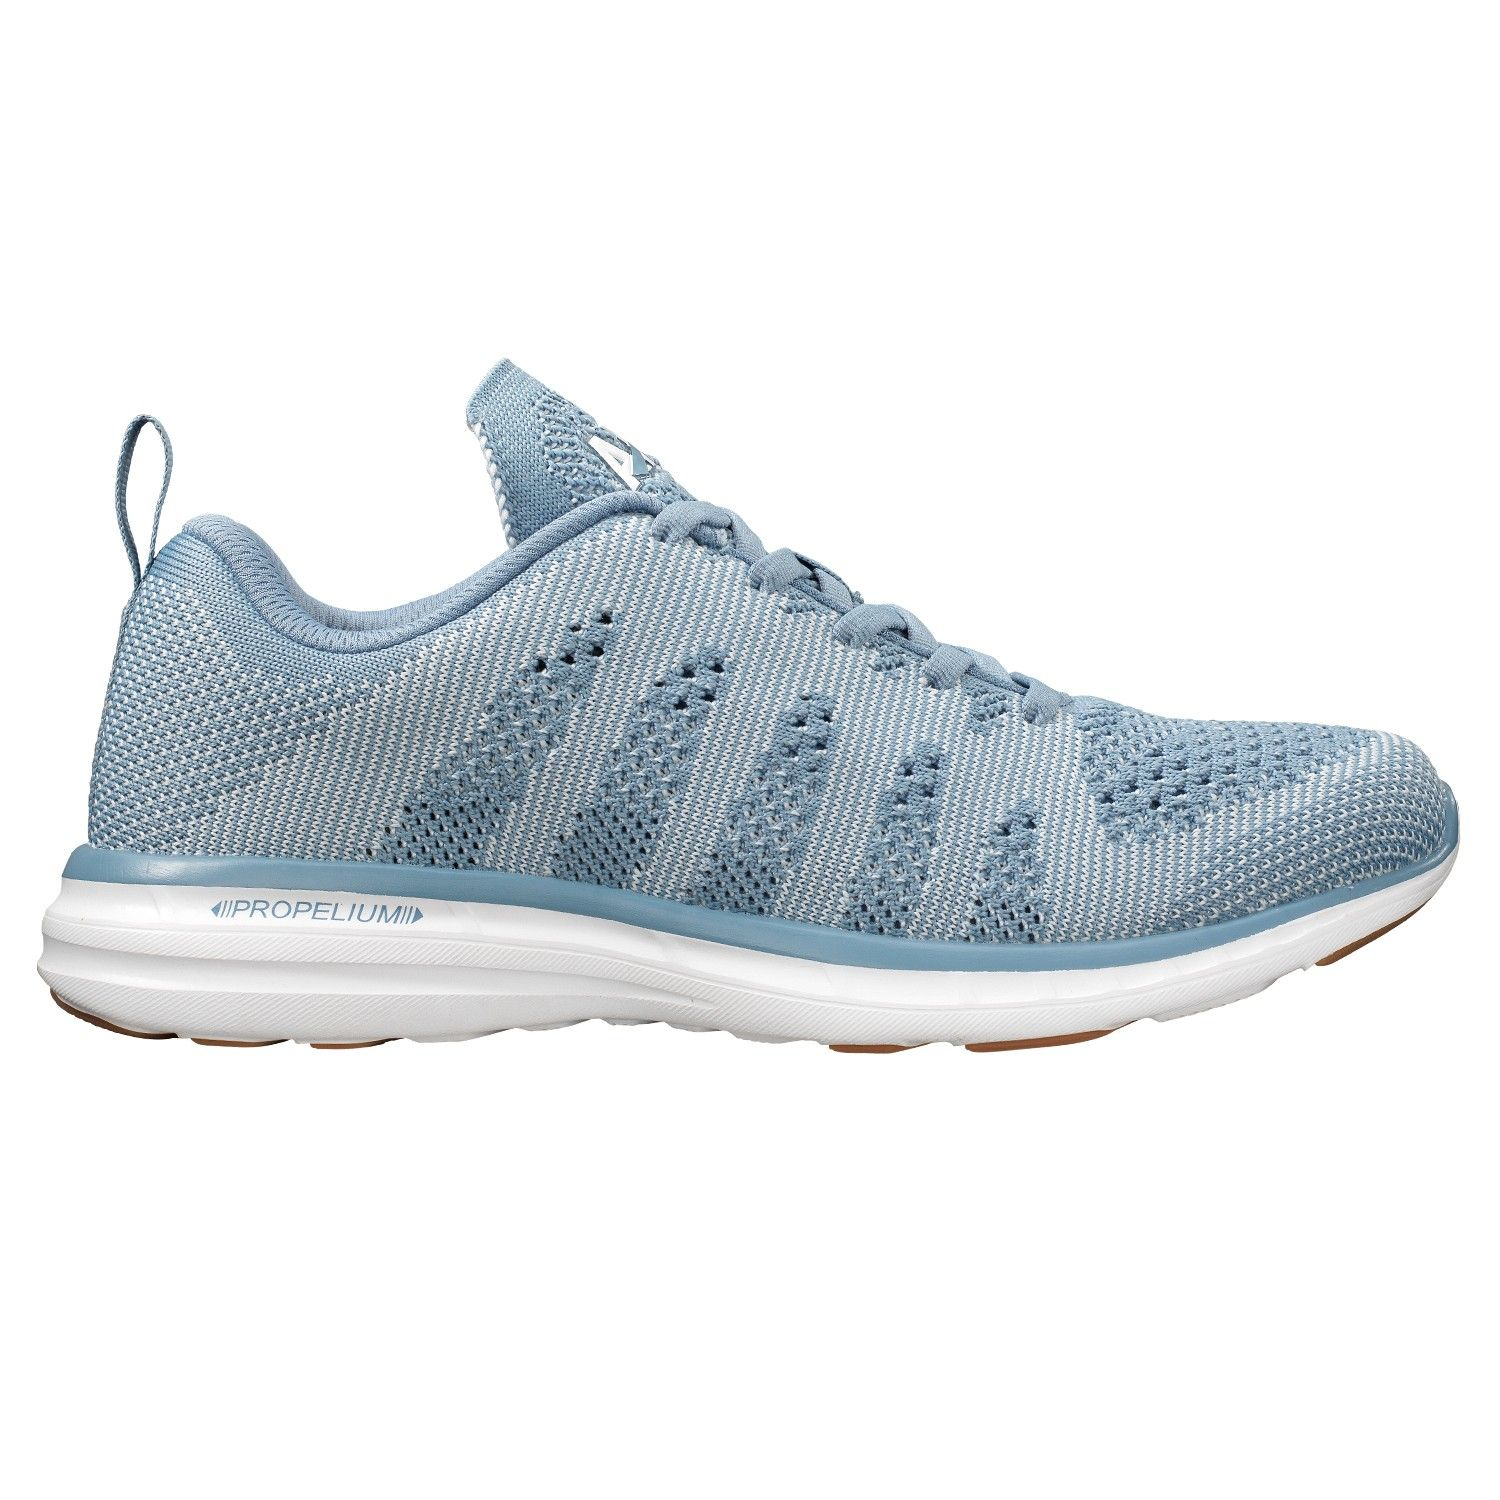 Apl running shoes, Sneakers men, Shoes